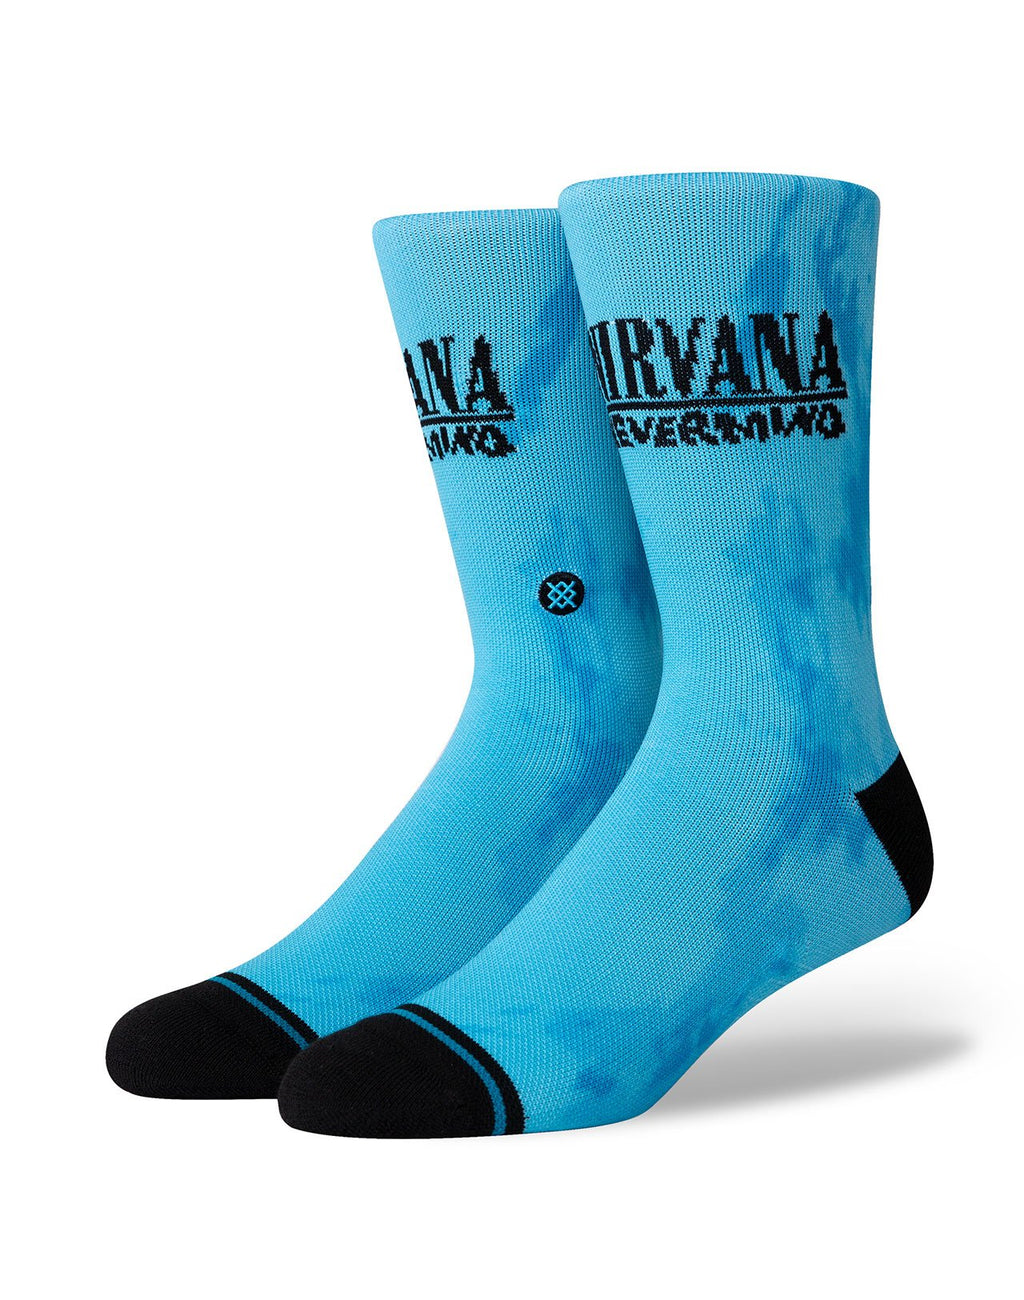 Chaussettes Nirvana Nevermind Stance